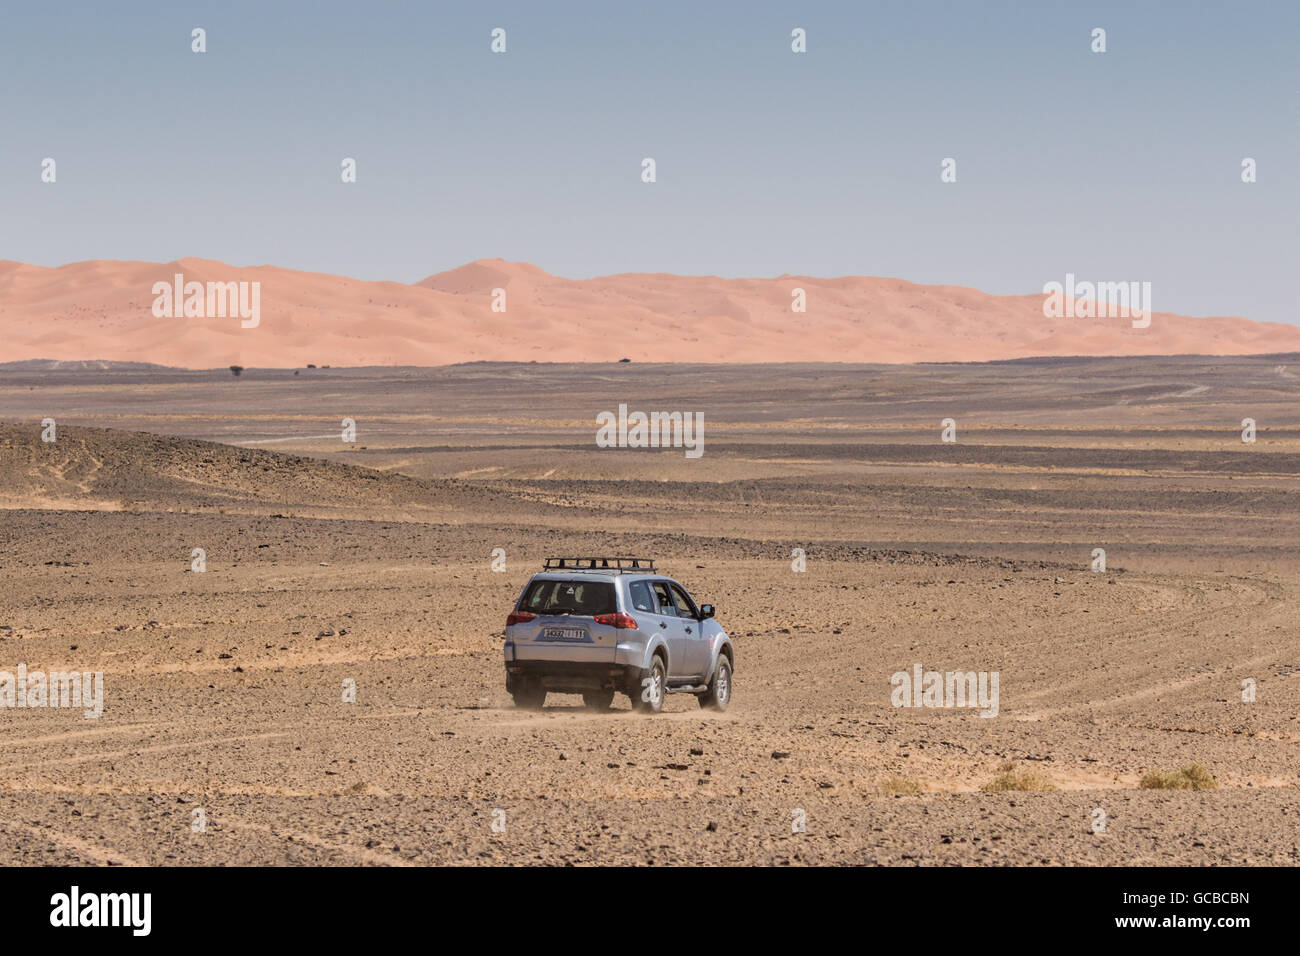 Silver Range Rover traveling into the Morocco desert, heading away from the camera towards sand dunes, blue sky - Stock Image